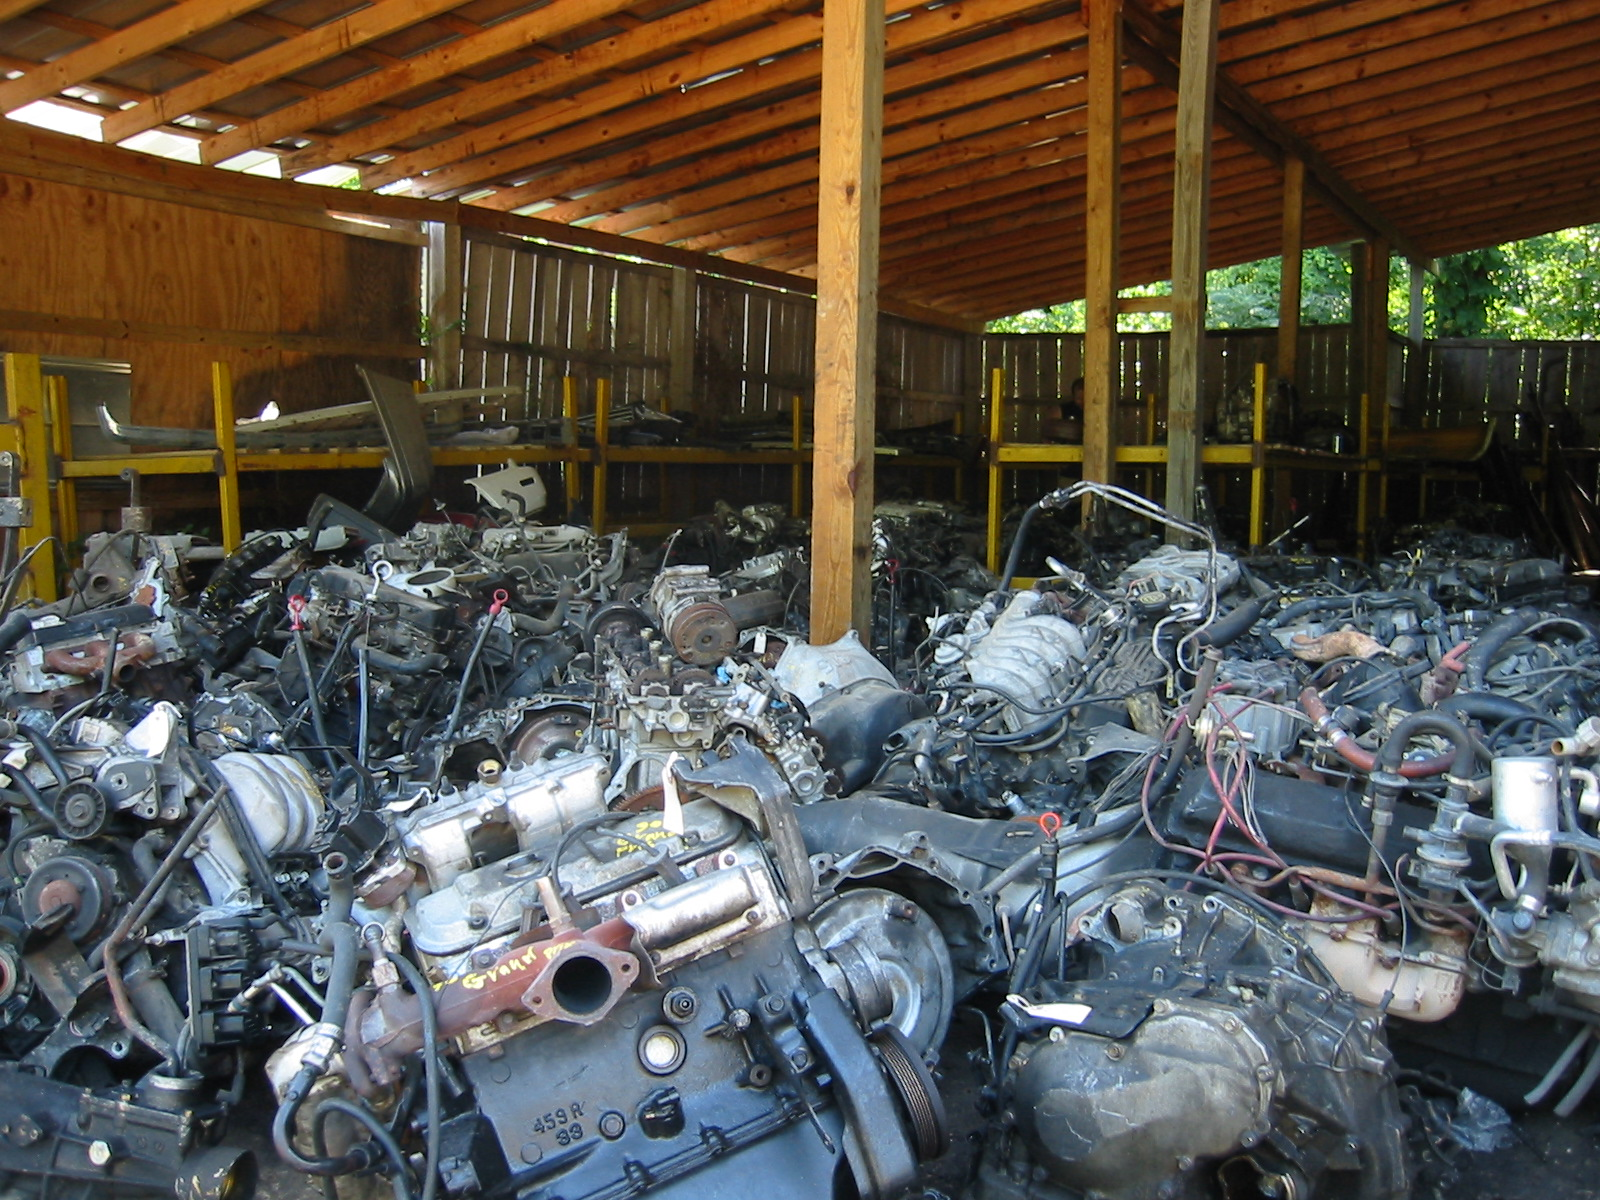 File:Scrapped Engines at a Junkyard.jpg - Wikimedia Commons